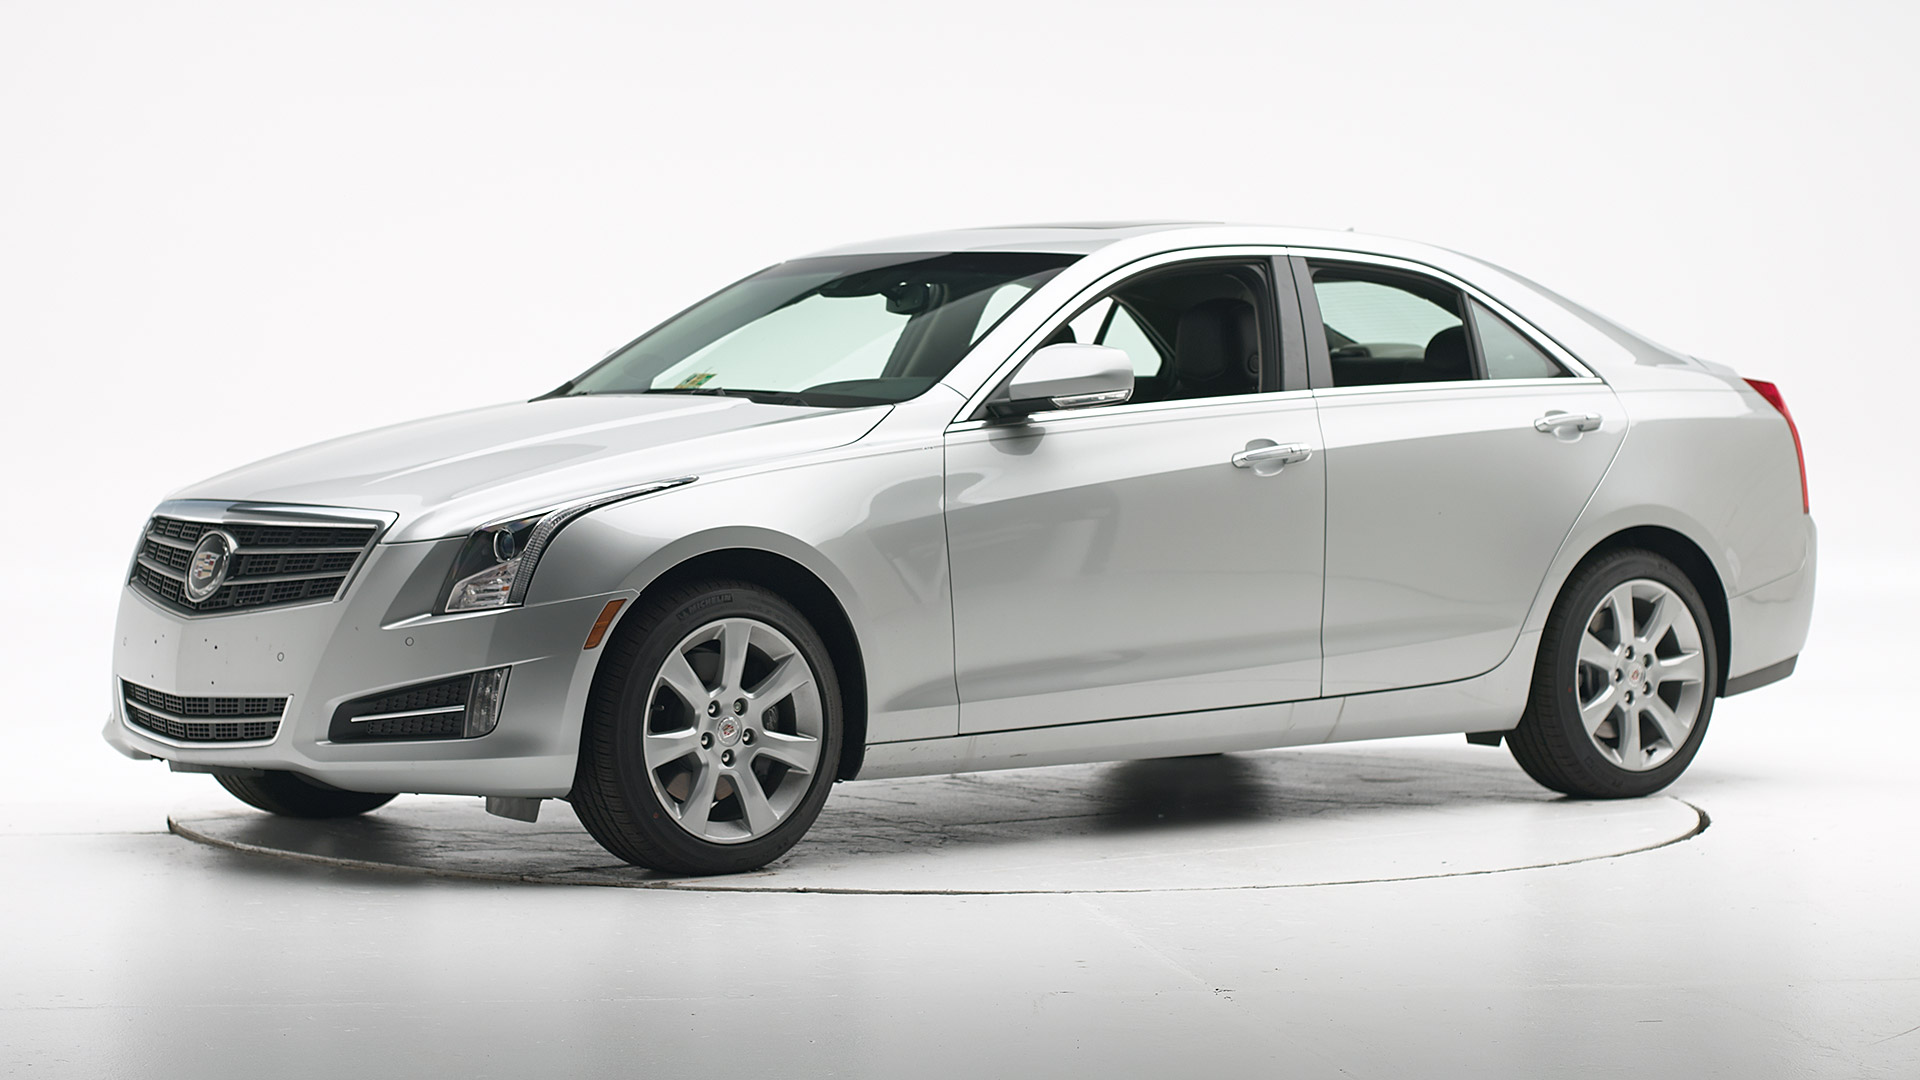 2014 Cadillac ATS 4-door sedan